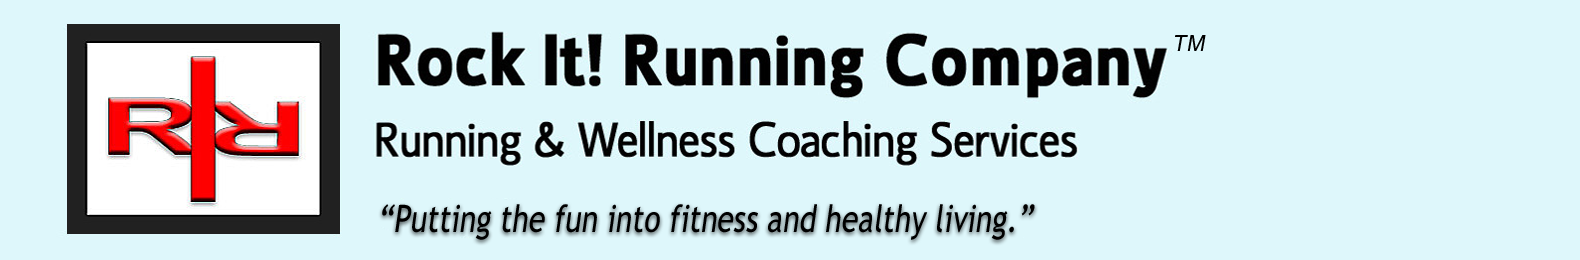 Rock It! Running Company: Running &amp; Wellness Coaching Services